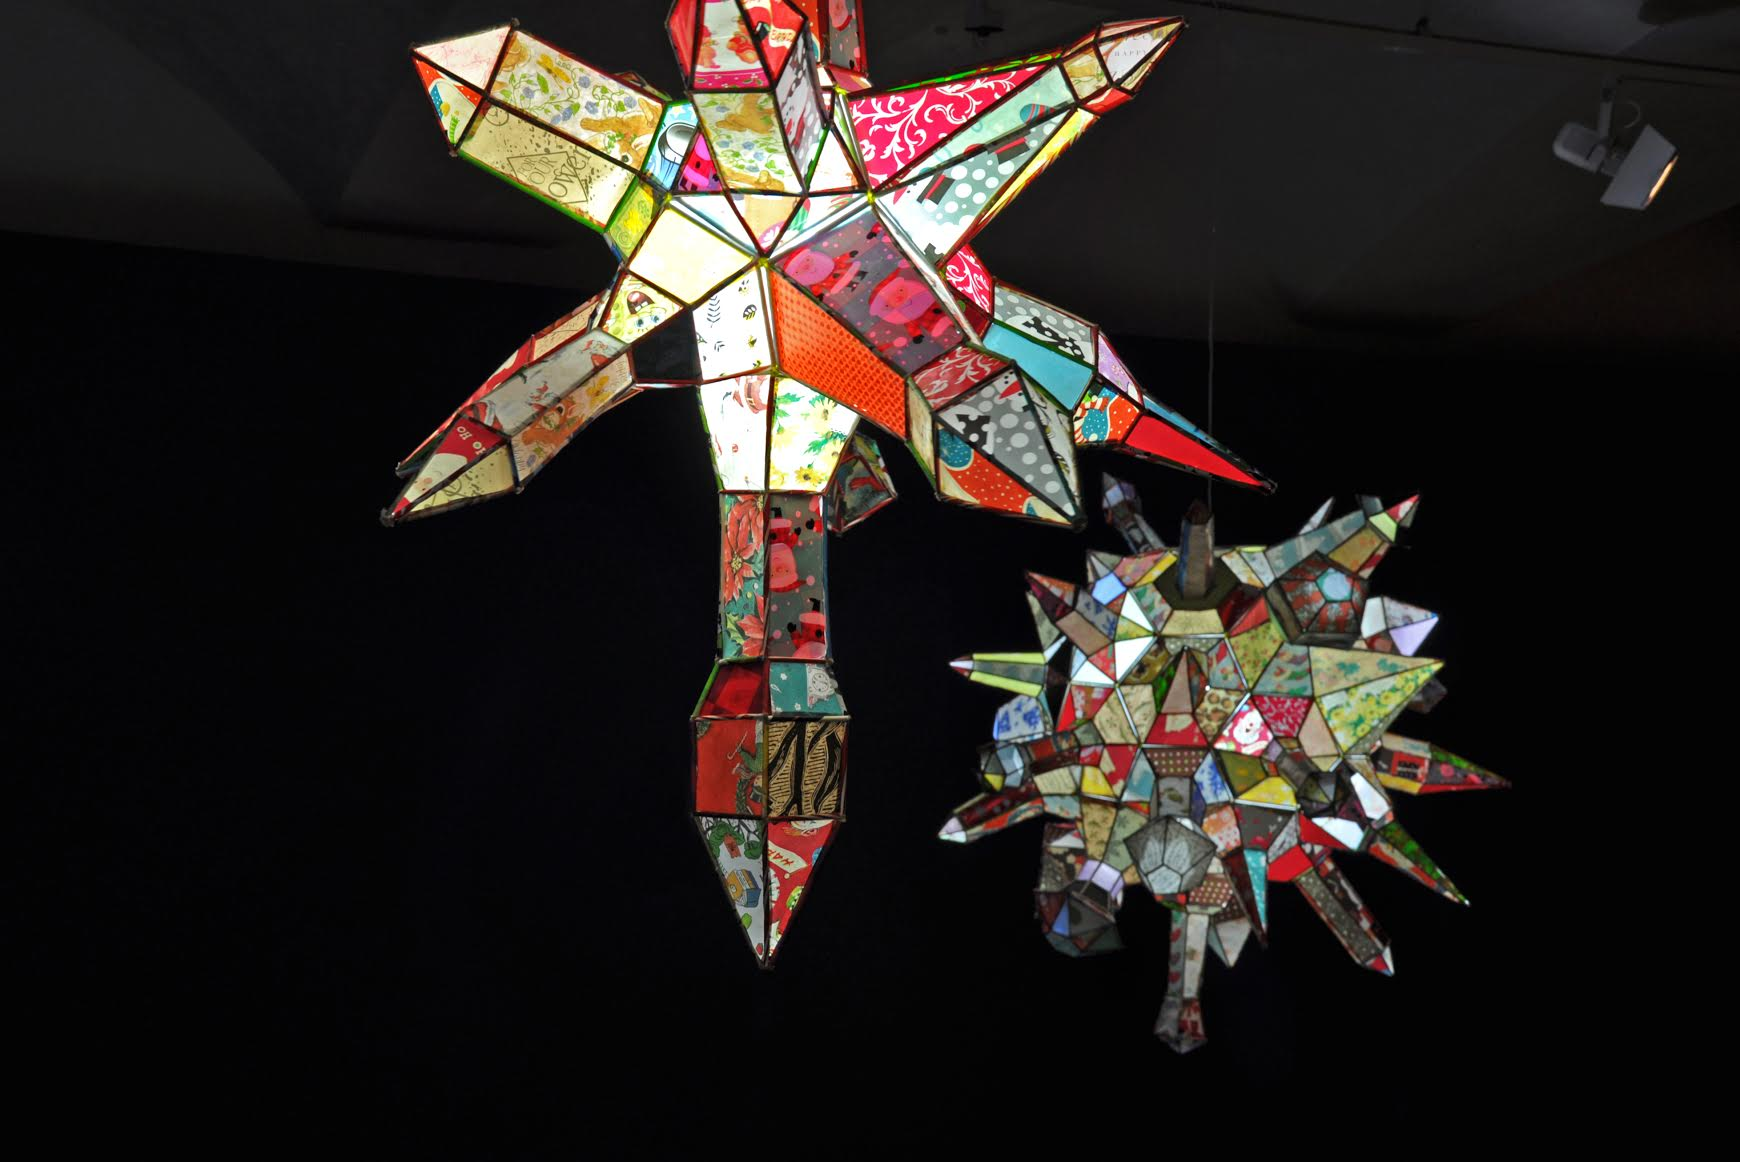 KIRSTEN HASSENFELD: Star Upon Star, 2011, paper with mixed media